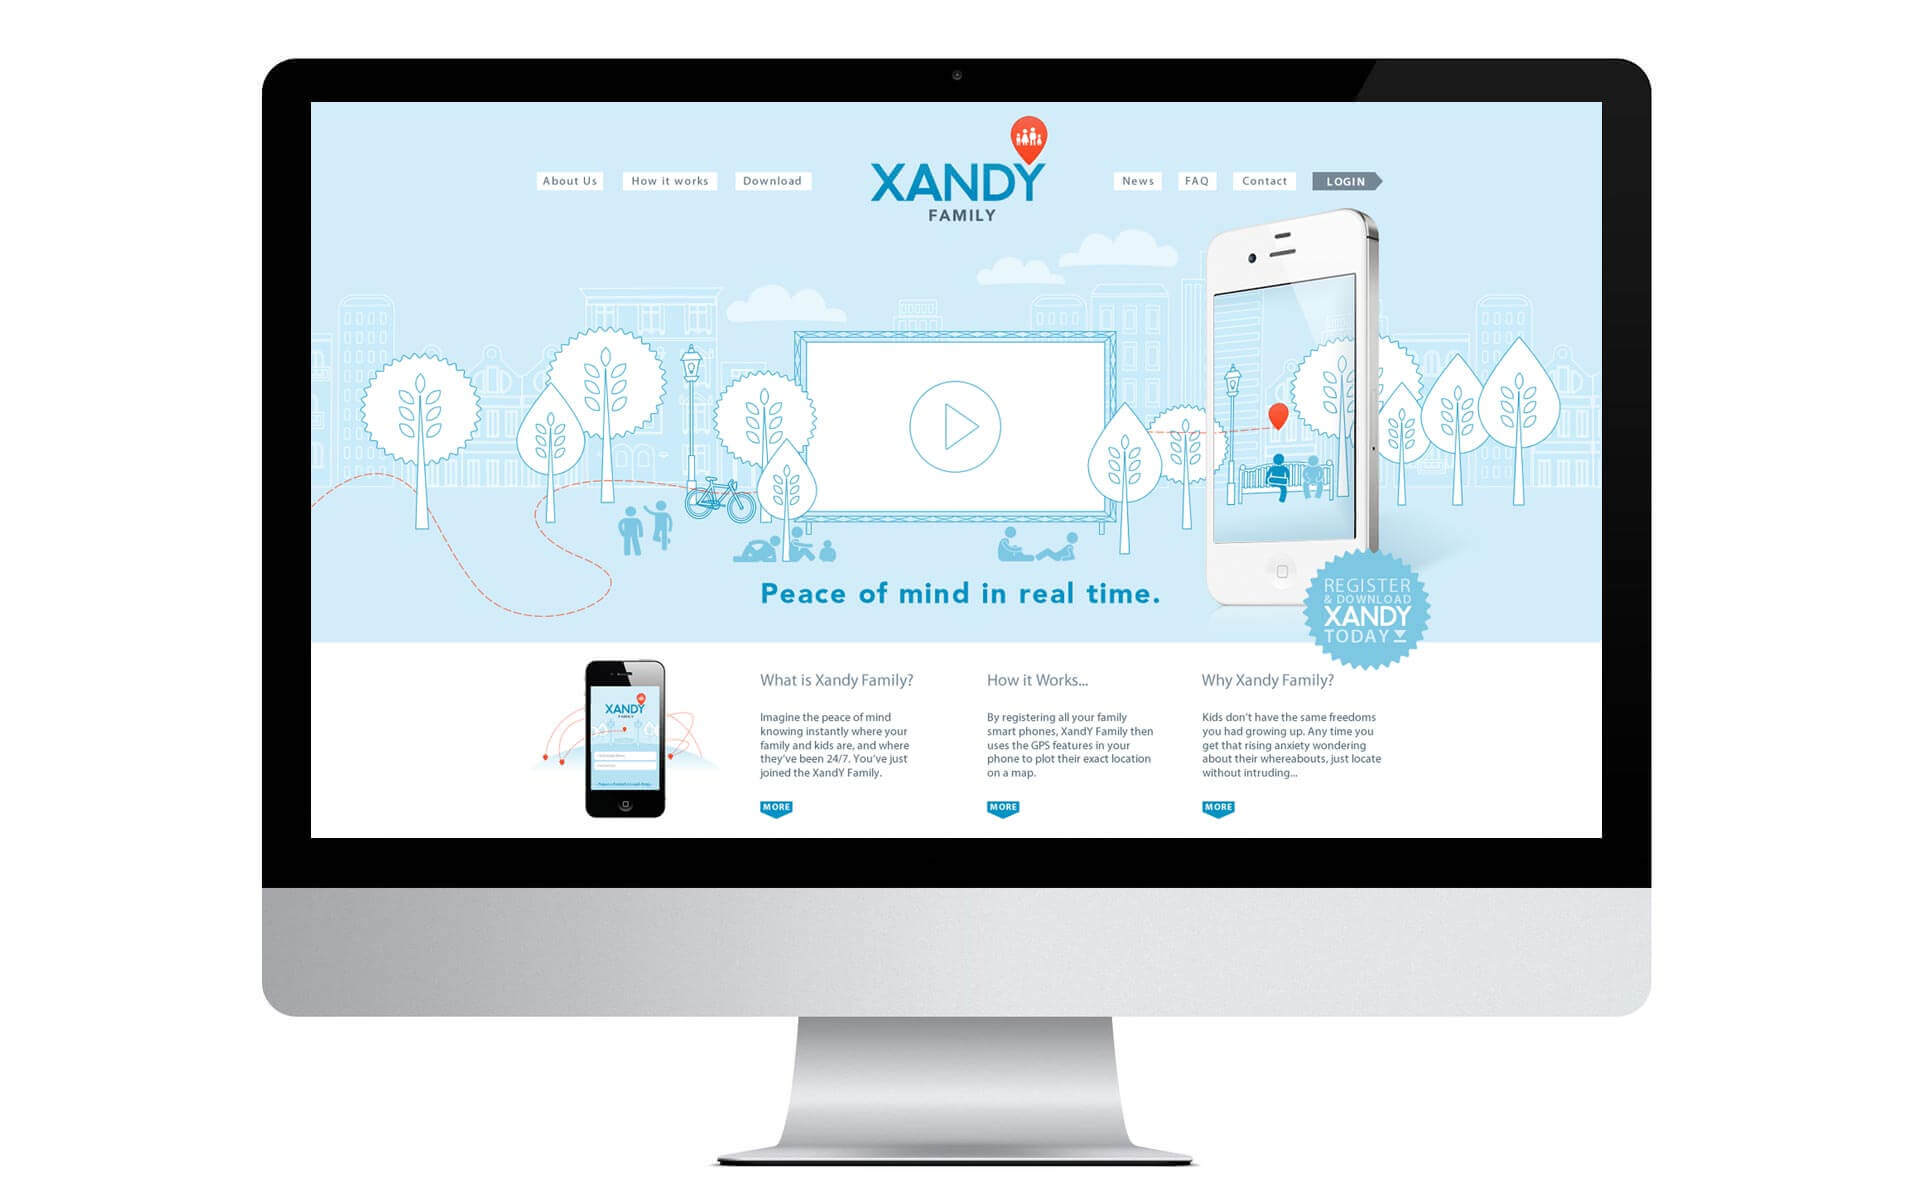 XandY family homepage website design.